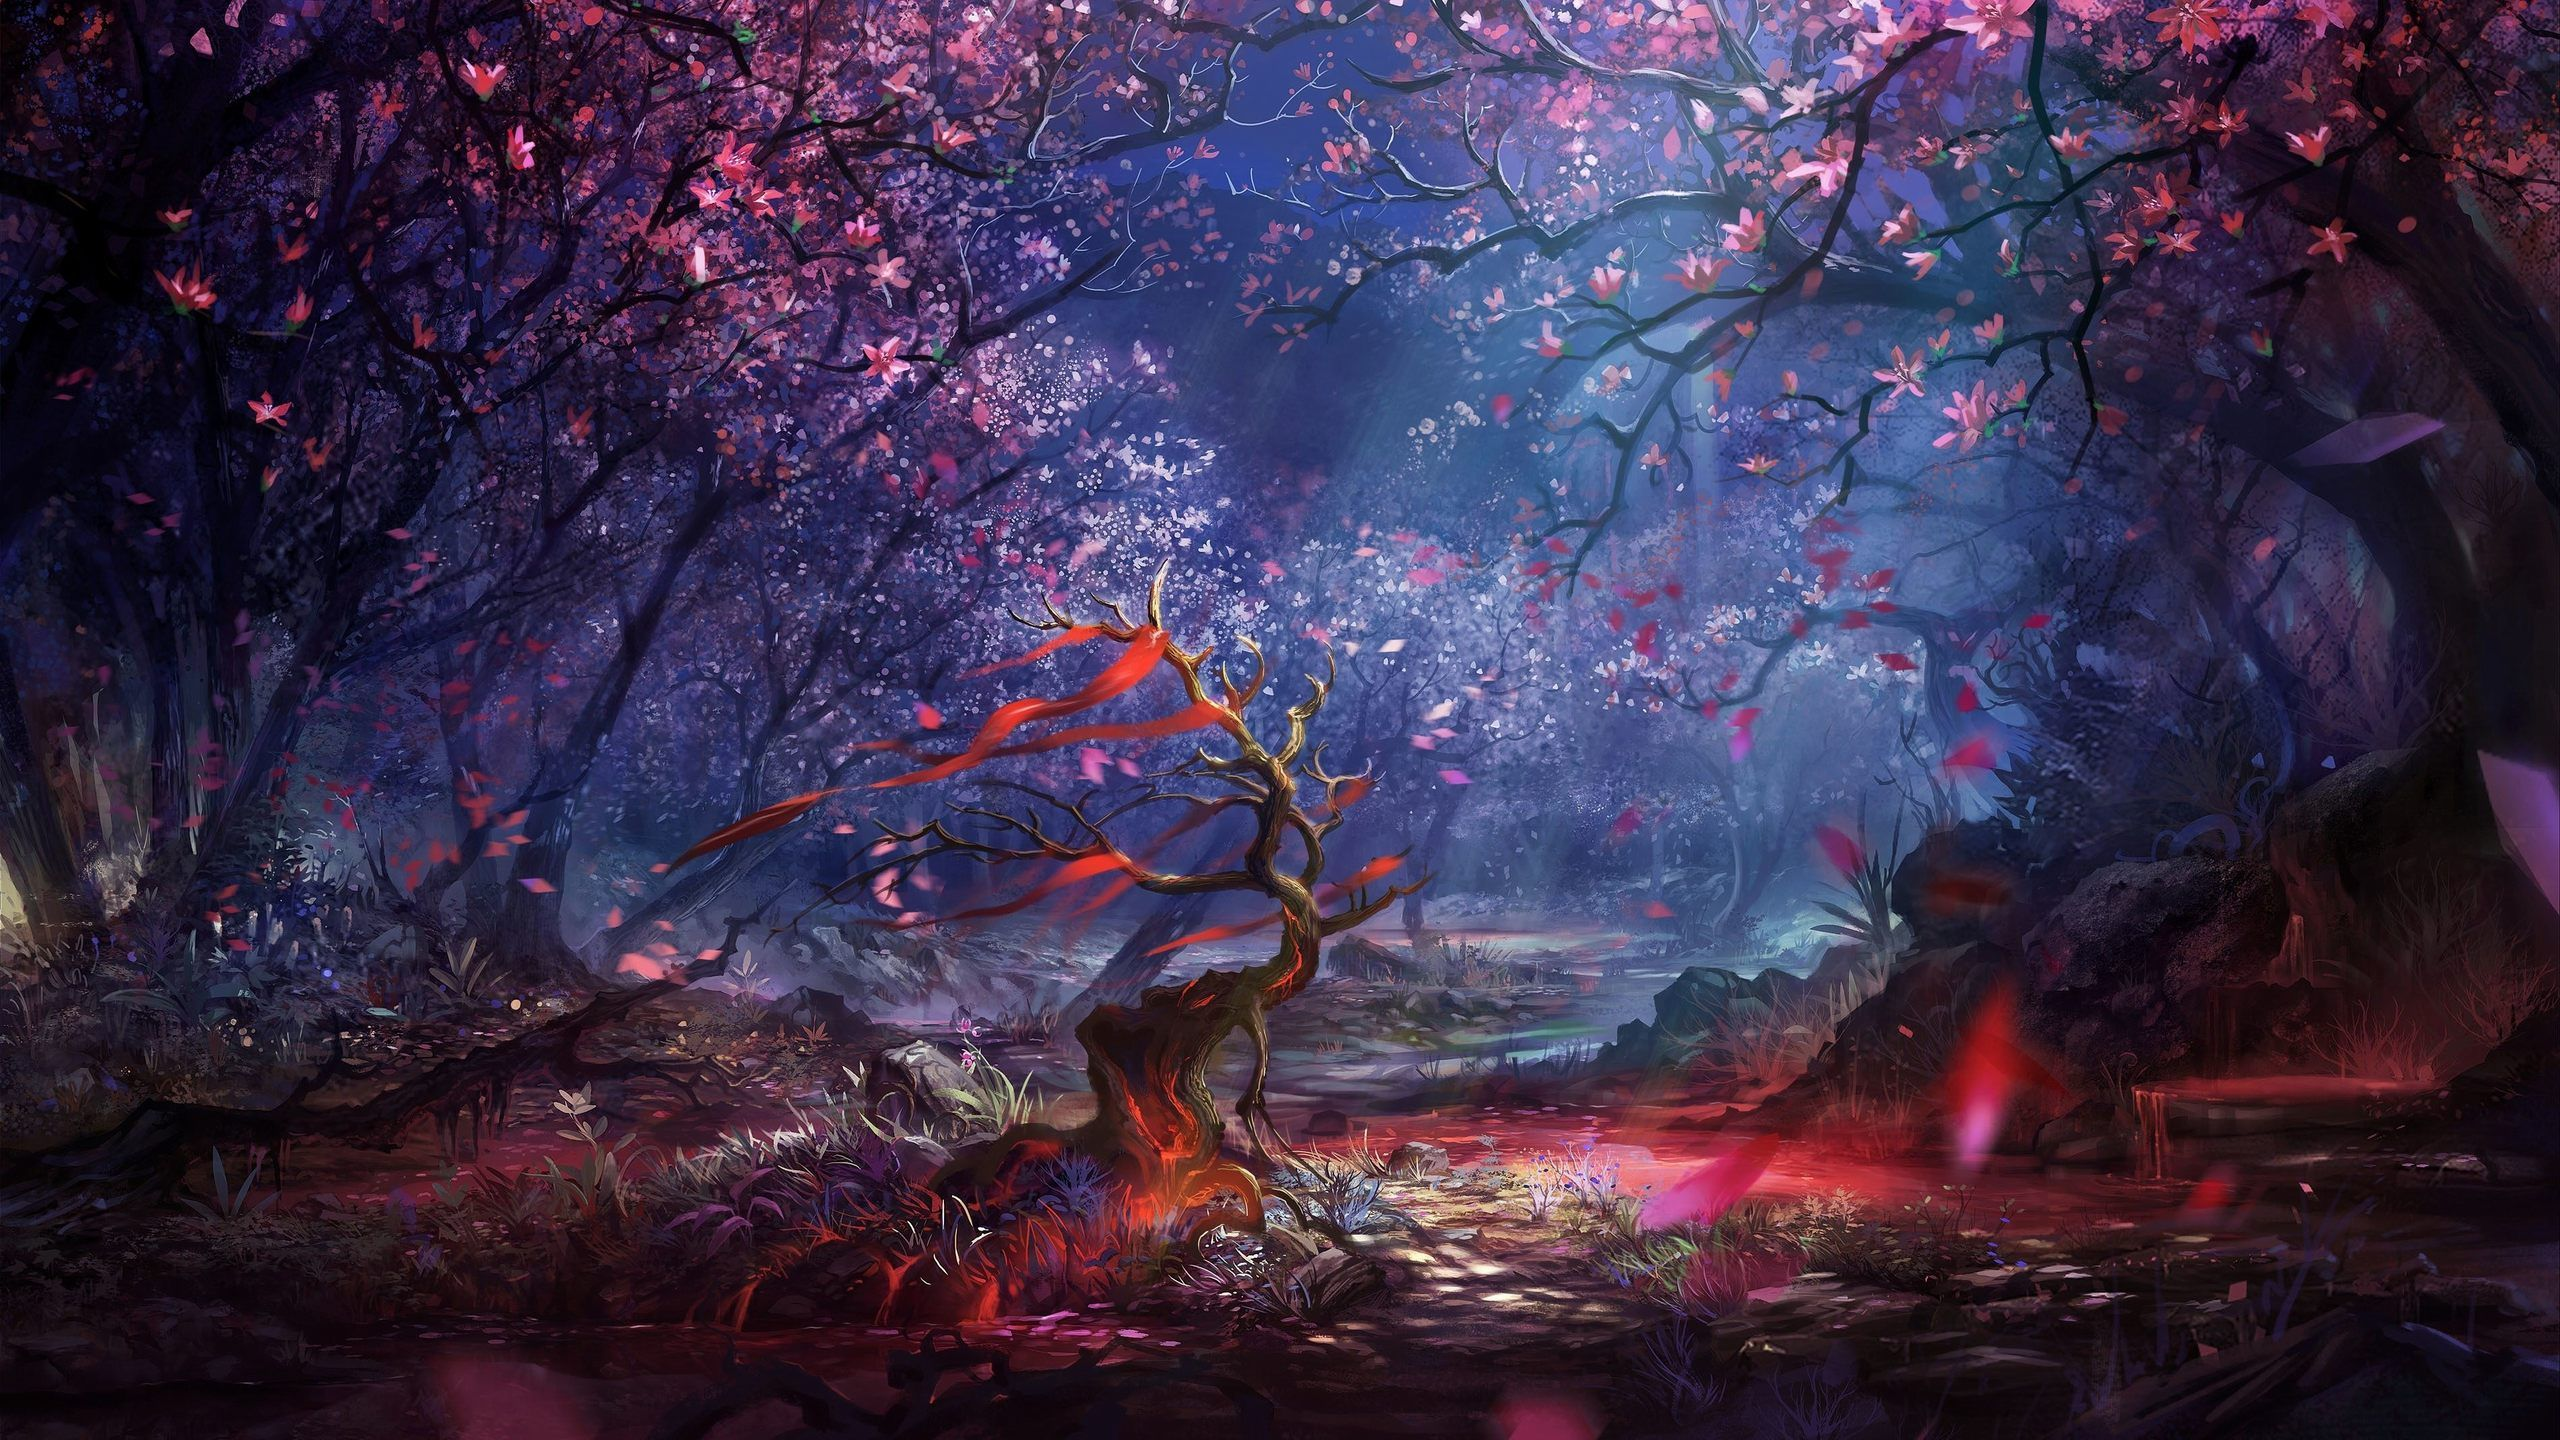 Fantasy Forest Widescreen Wallpaper High Resolution Wallpaper 2560x1440 Px Fantasy Landscape Landscape Wallpaper Fantasy Art Landscapes